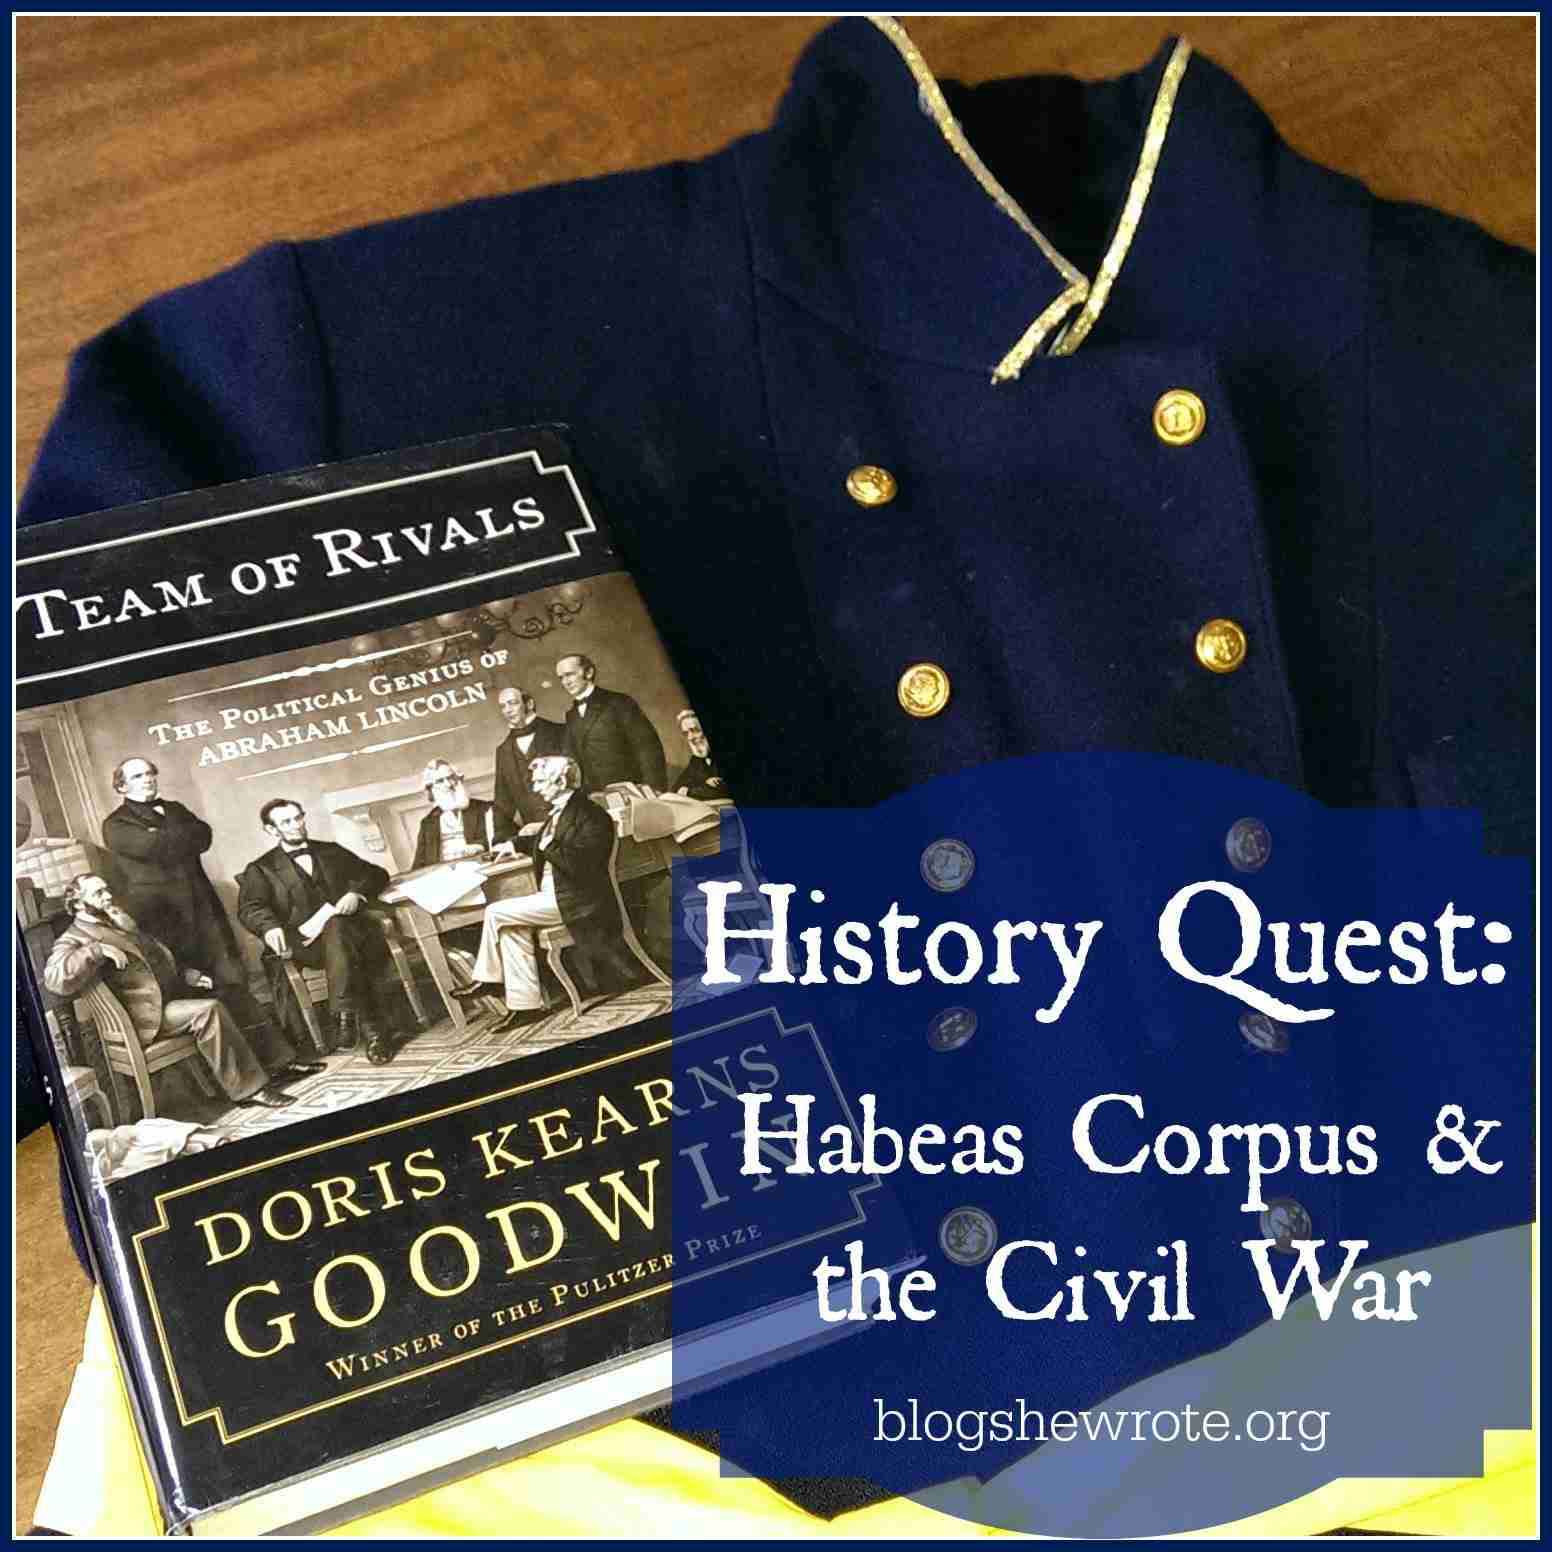 Blog, She Wrote: History Quest- Habeas Corpus & the Civil War